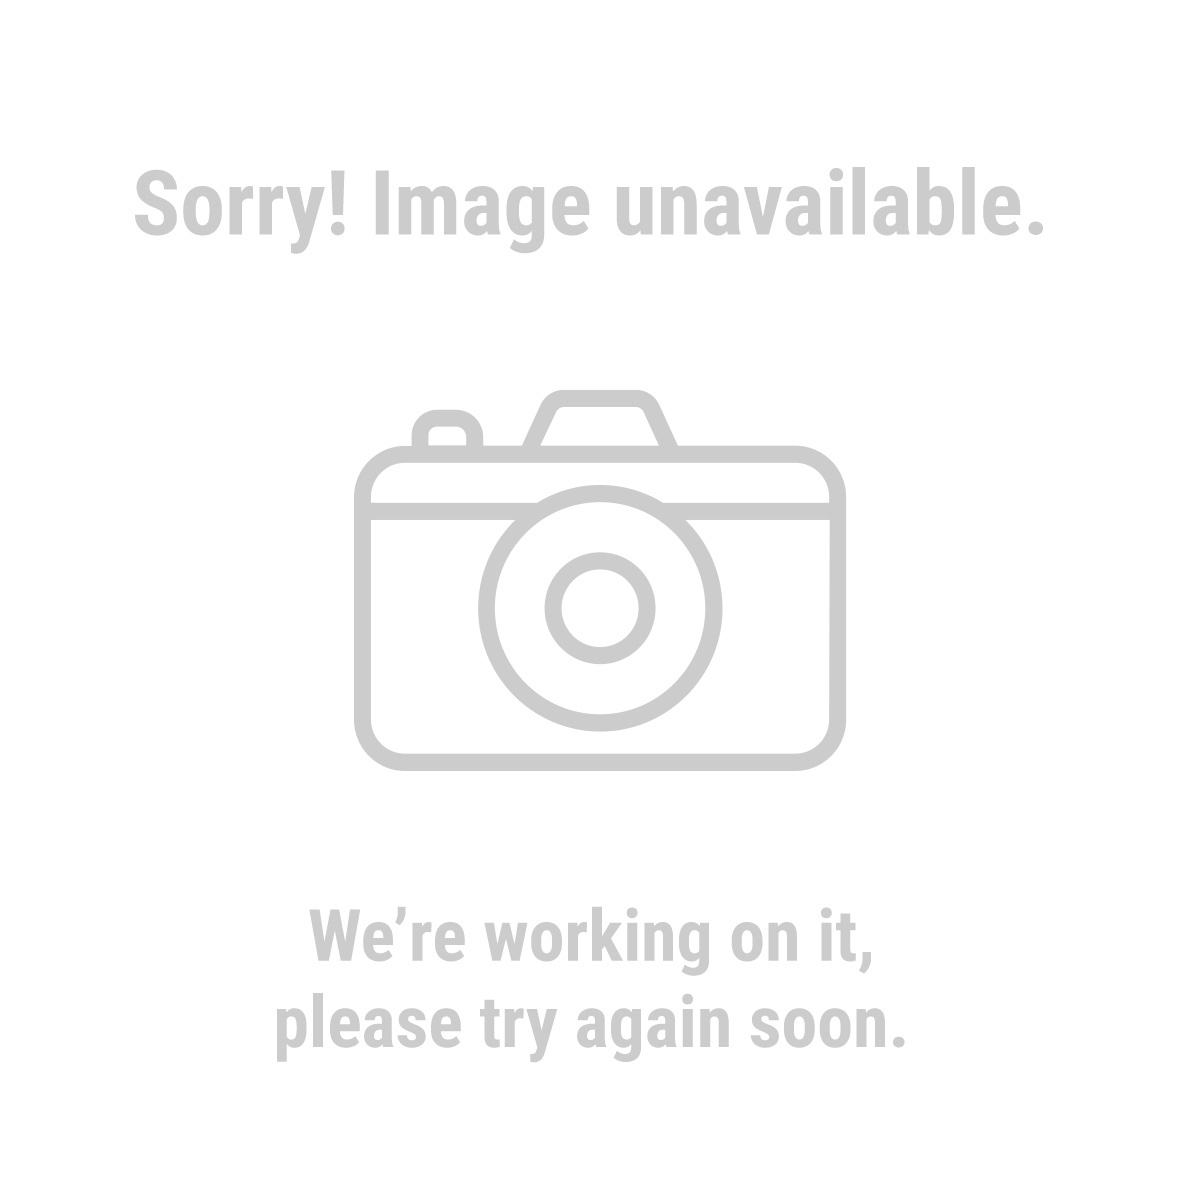 Central Forge 97070 12 Piece File and Rasp Set